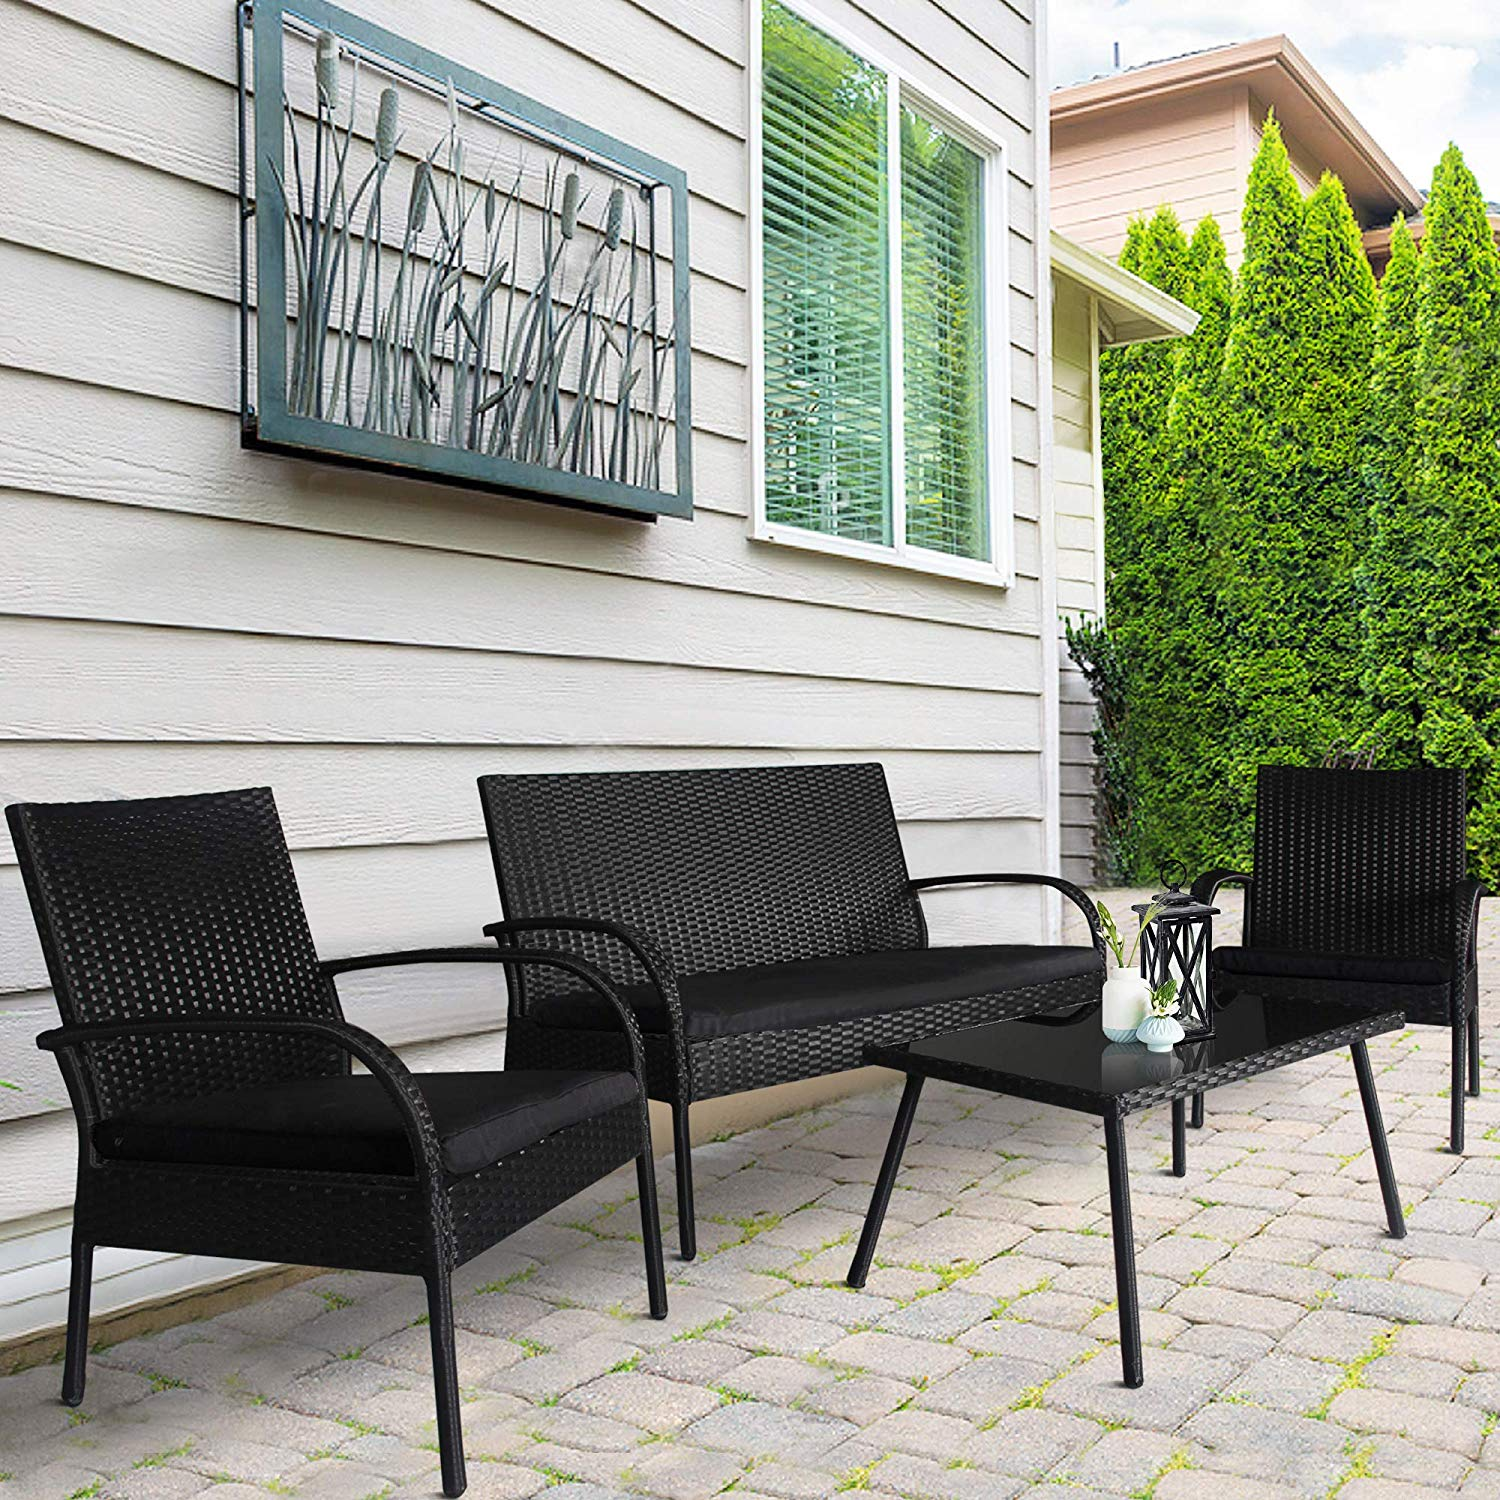 Homevibes 4 Pieces Outdoor Patio Furniture Sets Garden Conversation Set Backyard Rattan Chair Wicker Sofa Set, Black Rattan Black Cushions